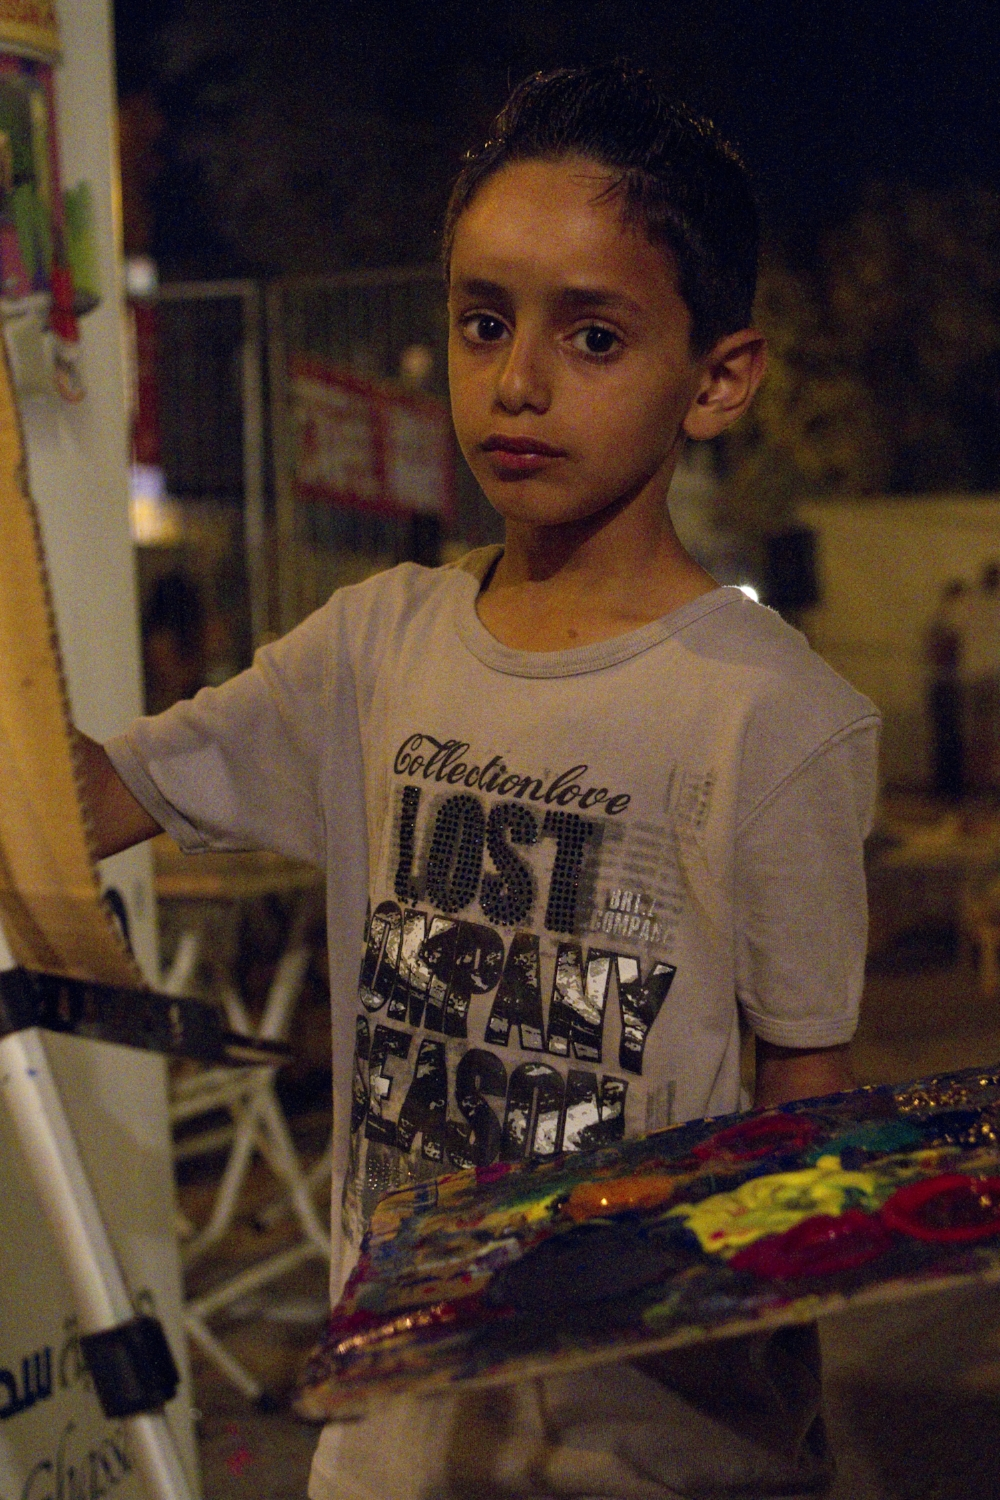 Art fair. Amman, Jordan, 2011